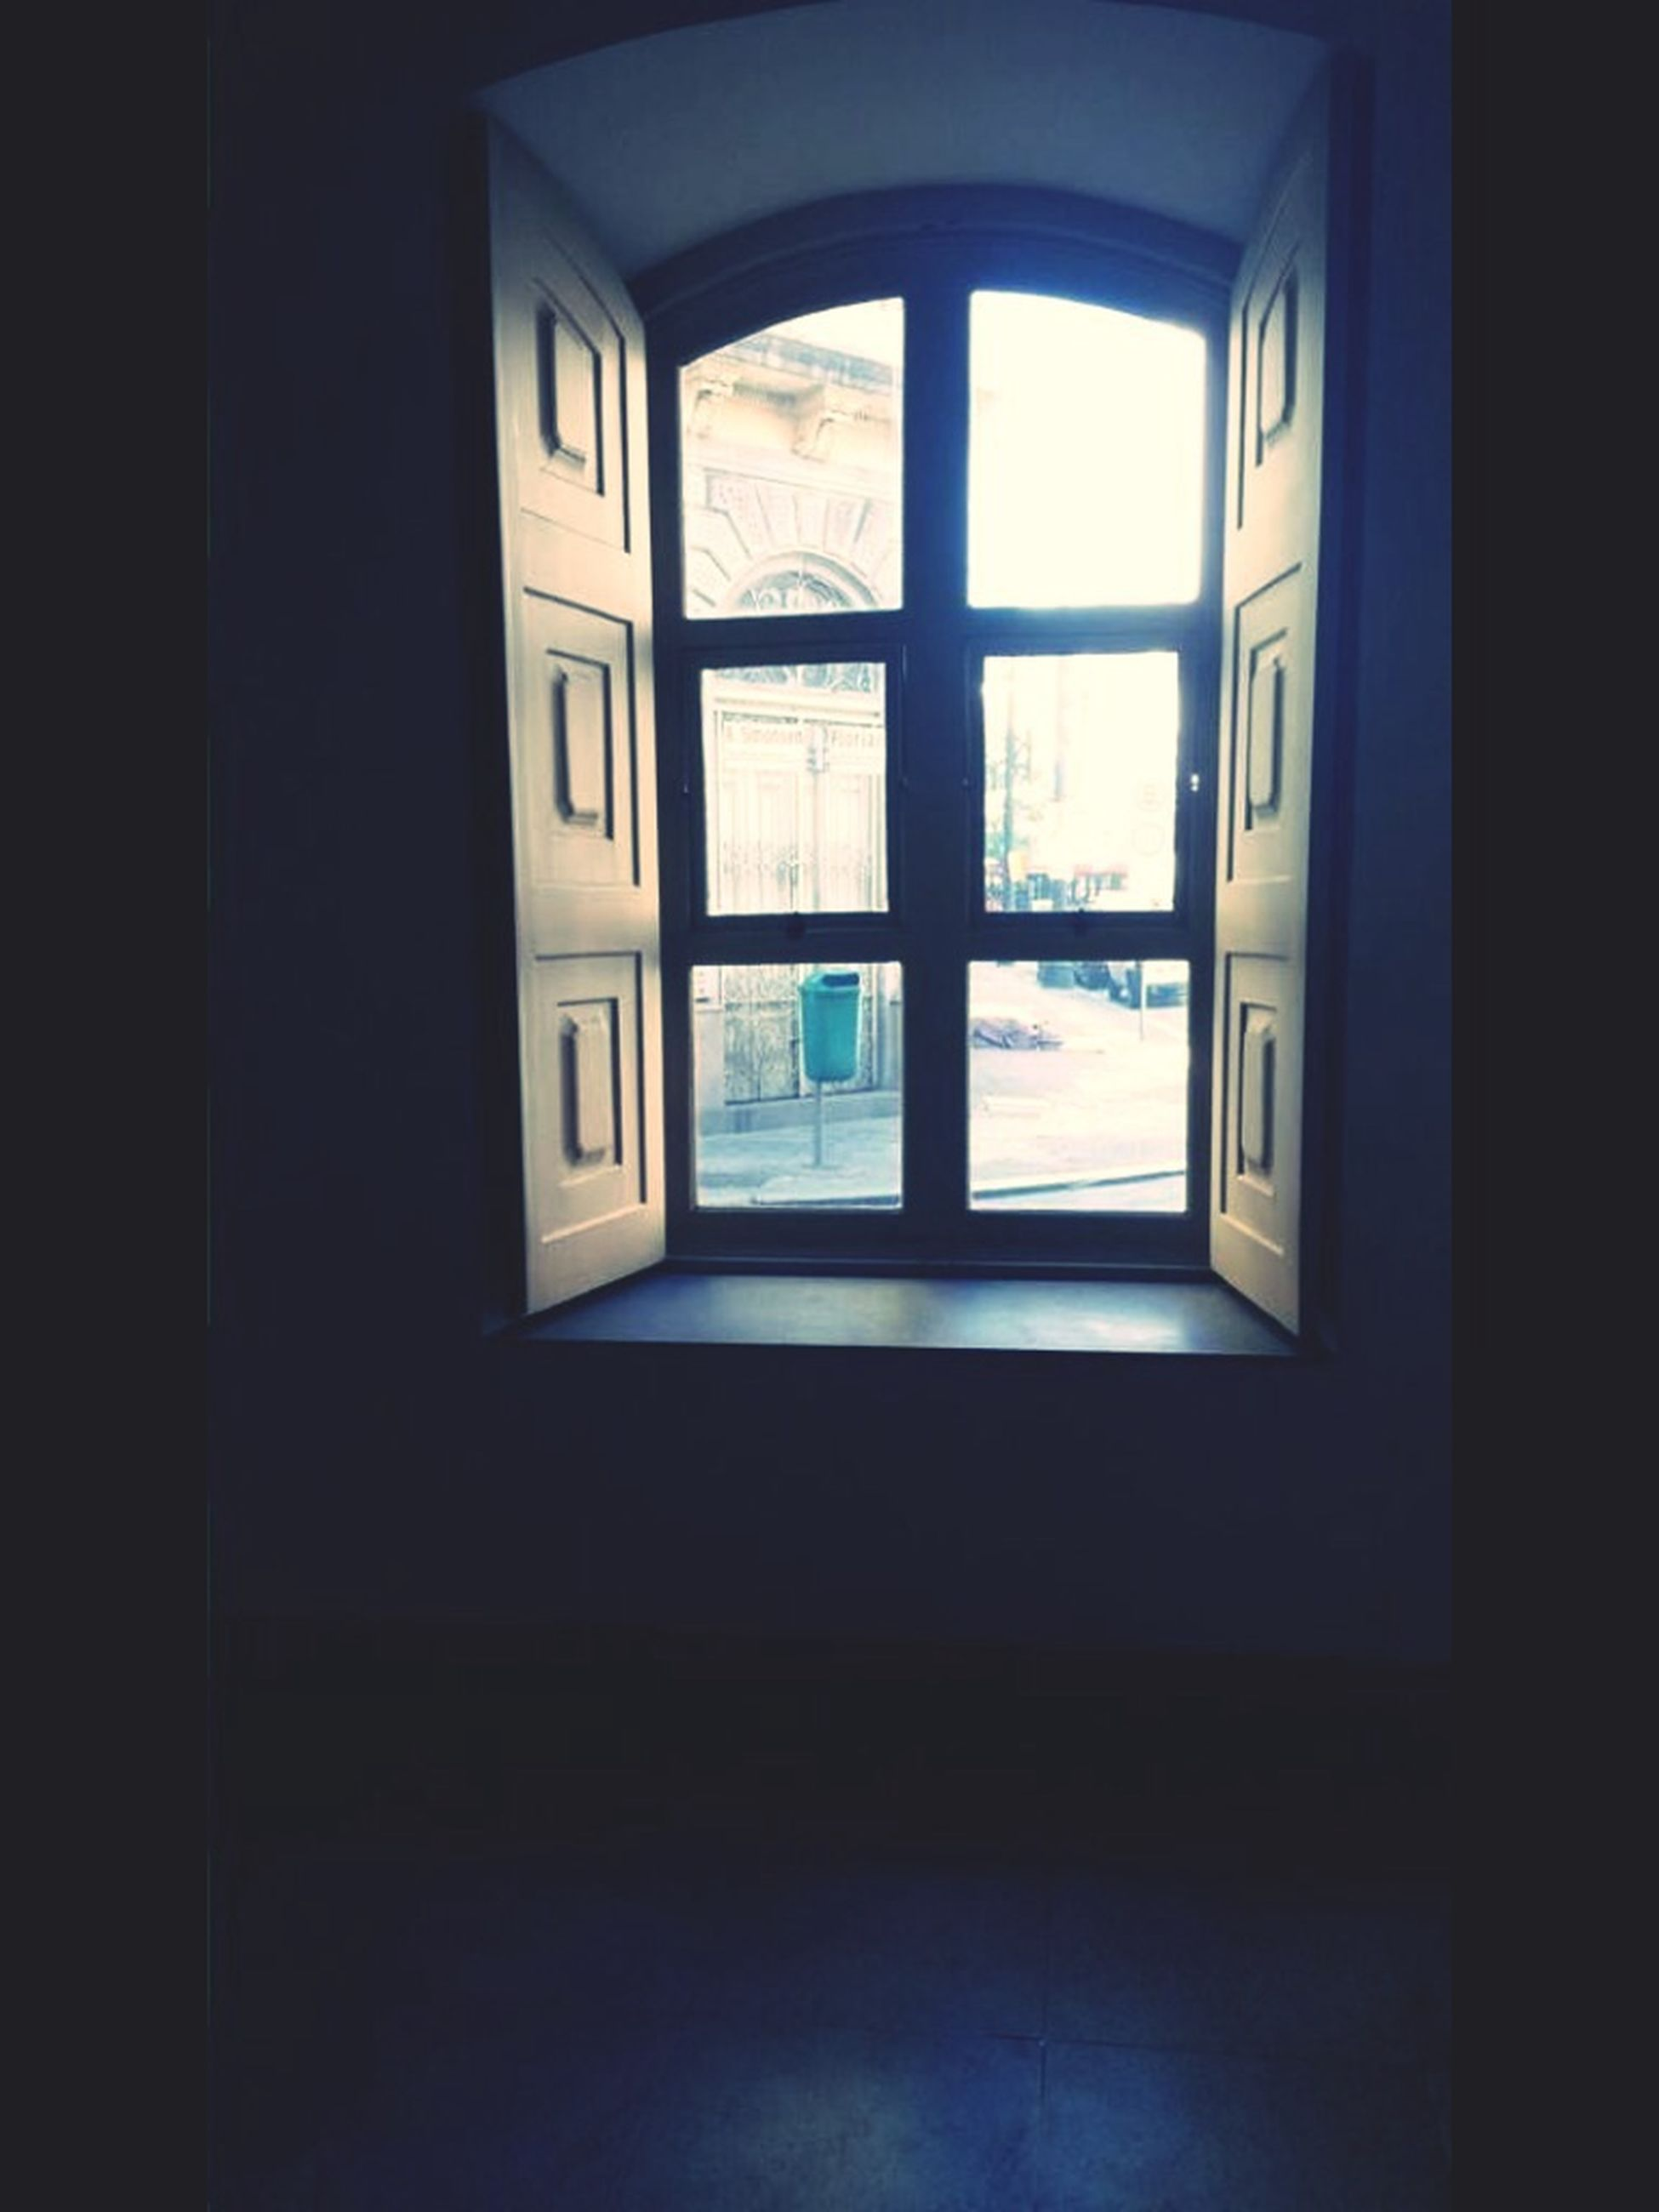 window, indoors, glass - material, architecture, transparent, built structure, day, reflection, door, water, house, open, transportation, no people, sunlight, empty, looking through window, building, absence, building exterior